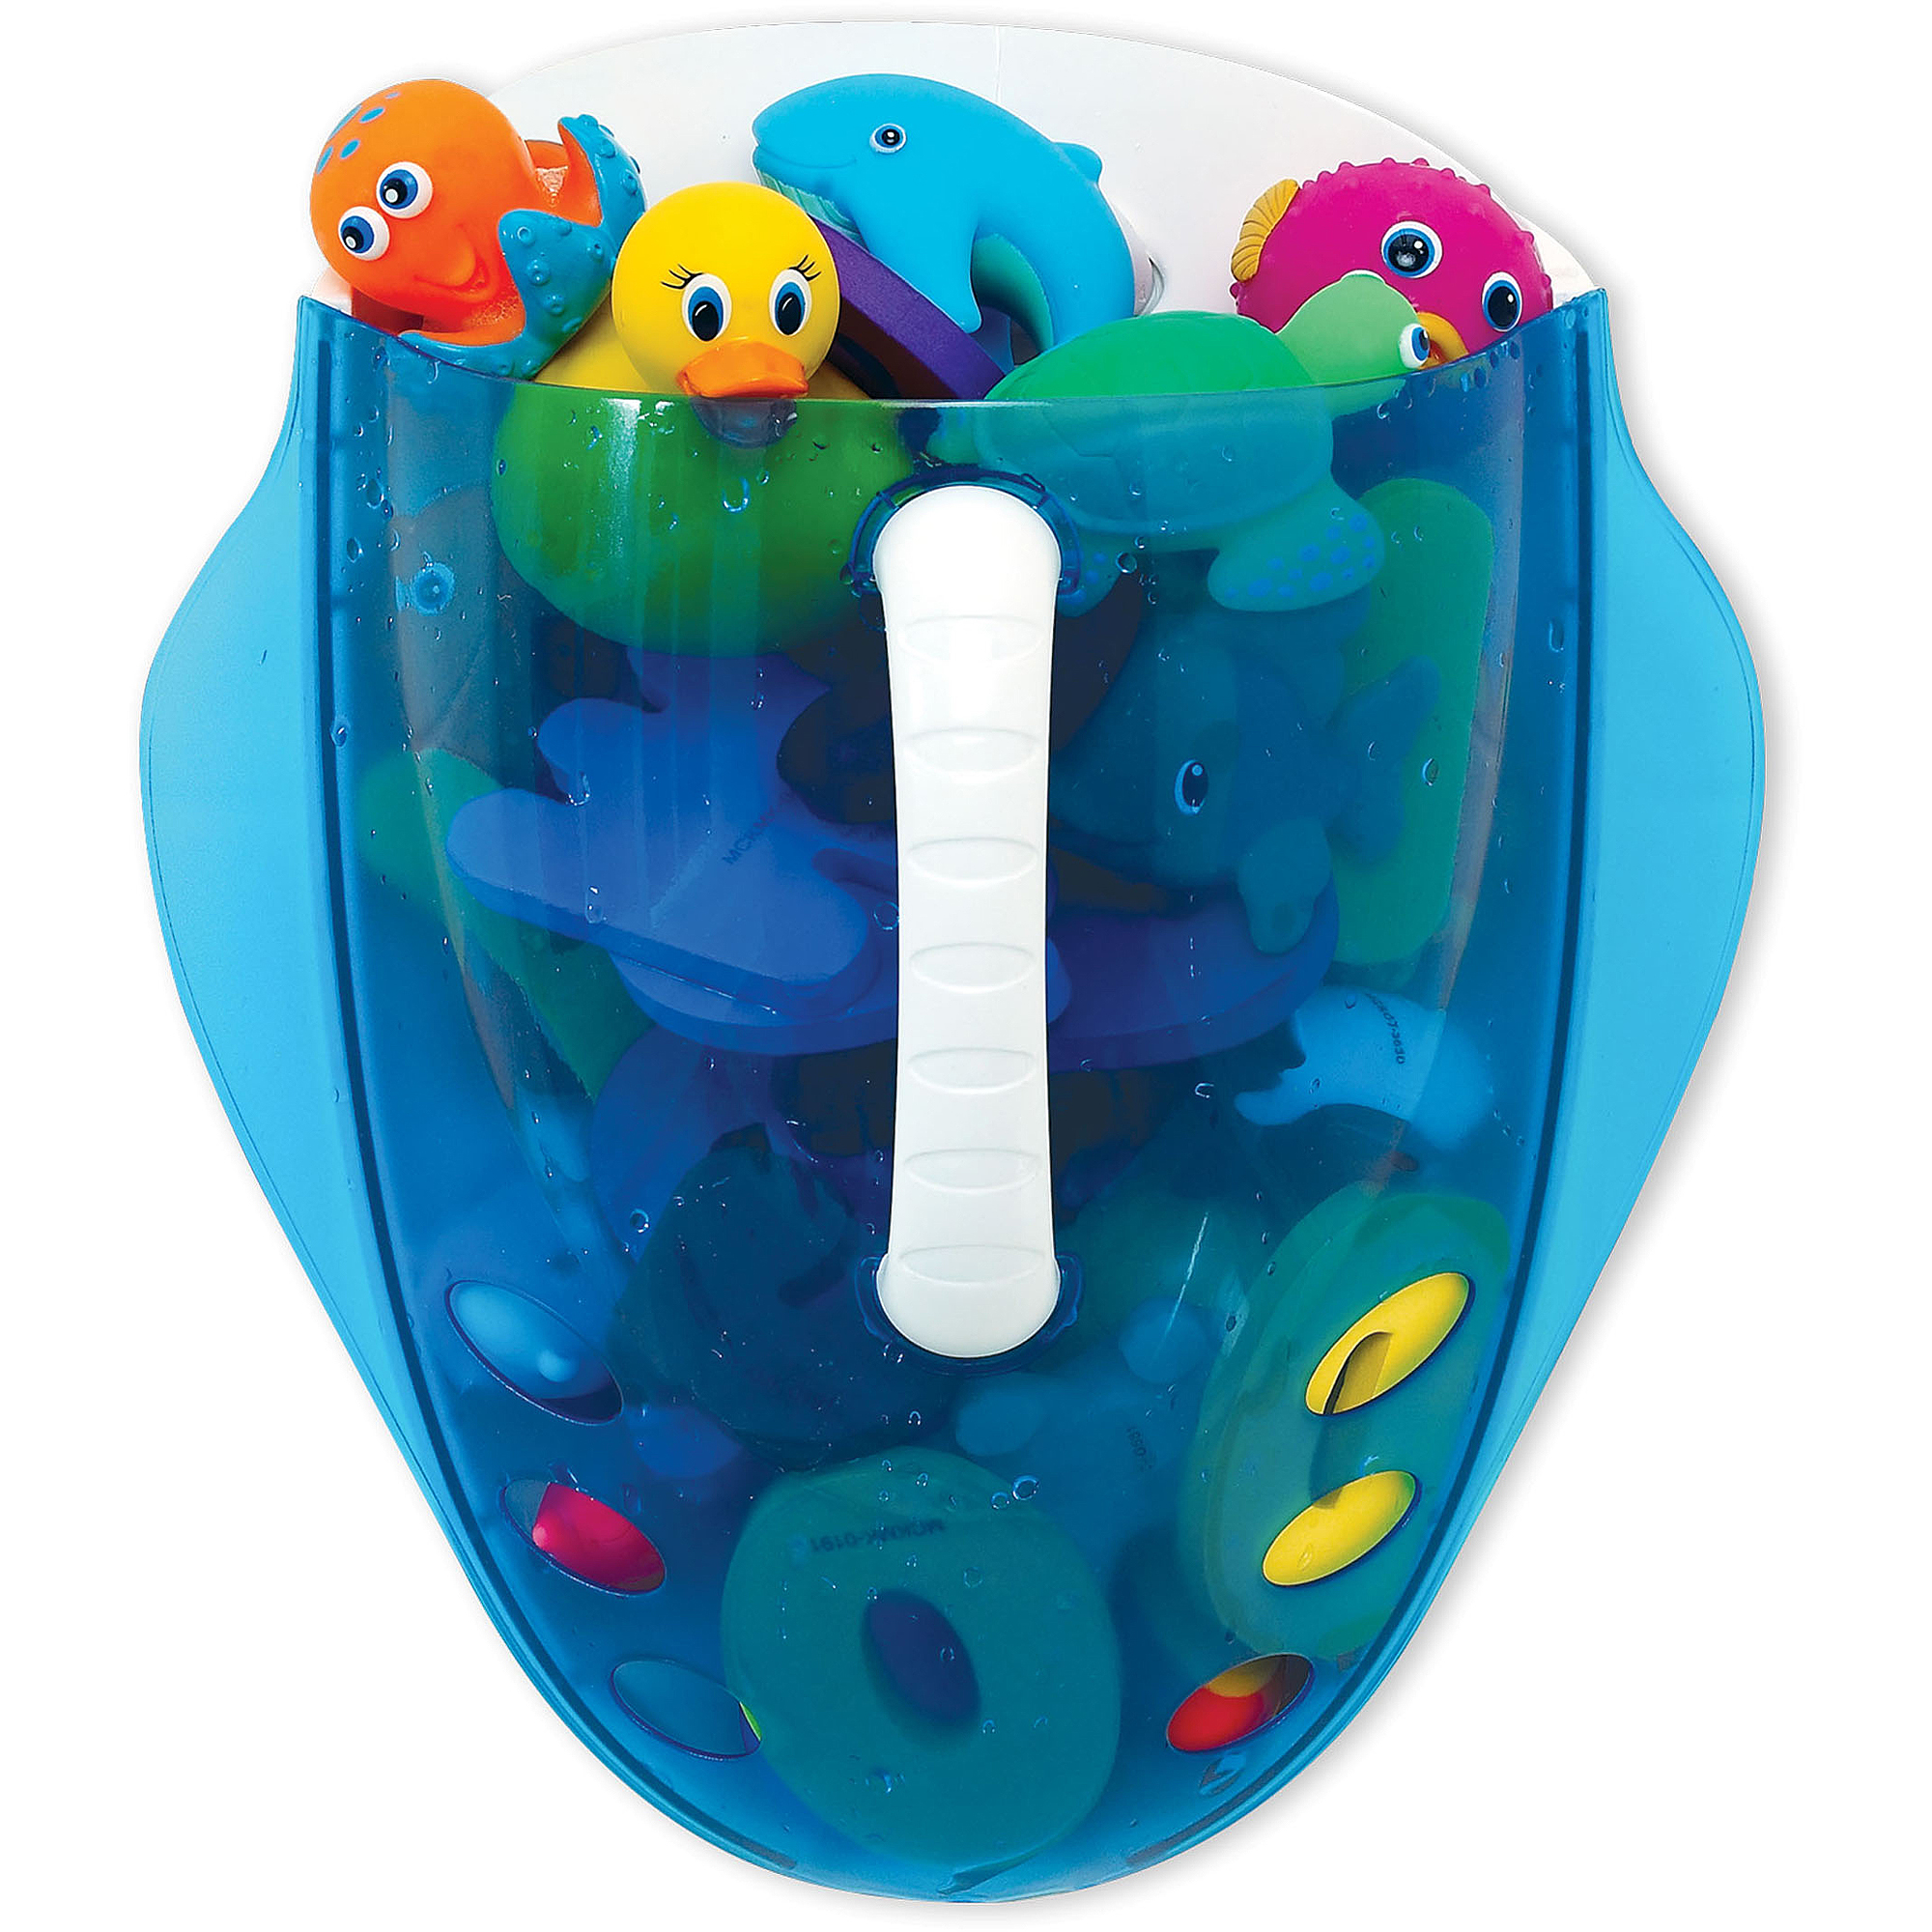 Munchkin Scoop Drain and Store Bath Toy Organizer - Walmart.com